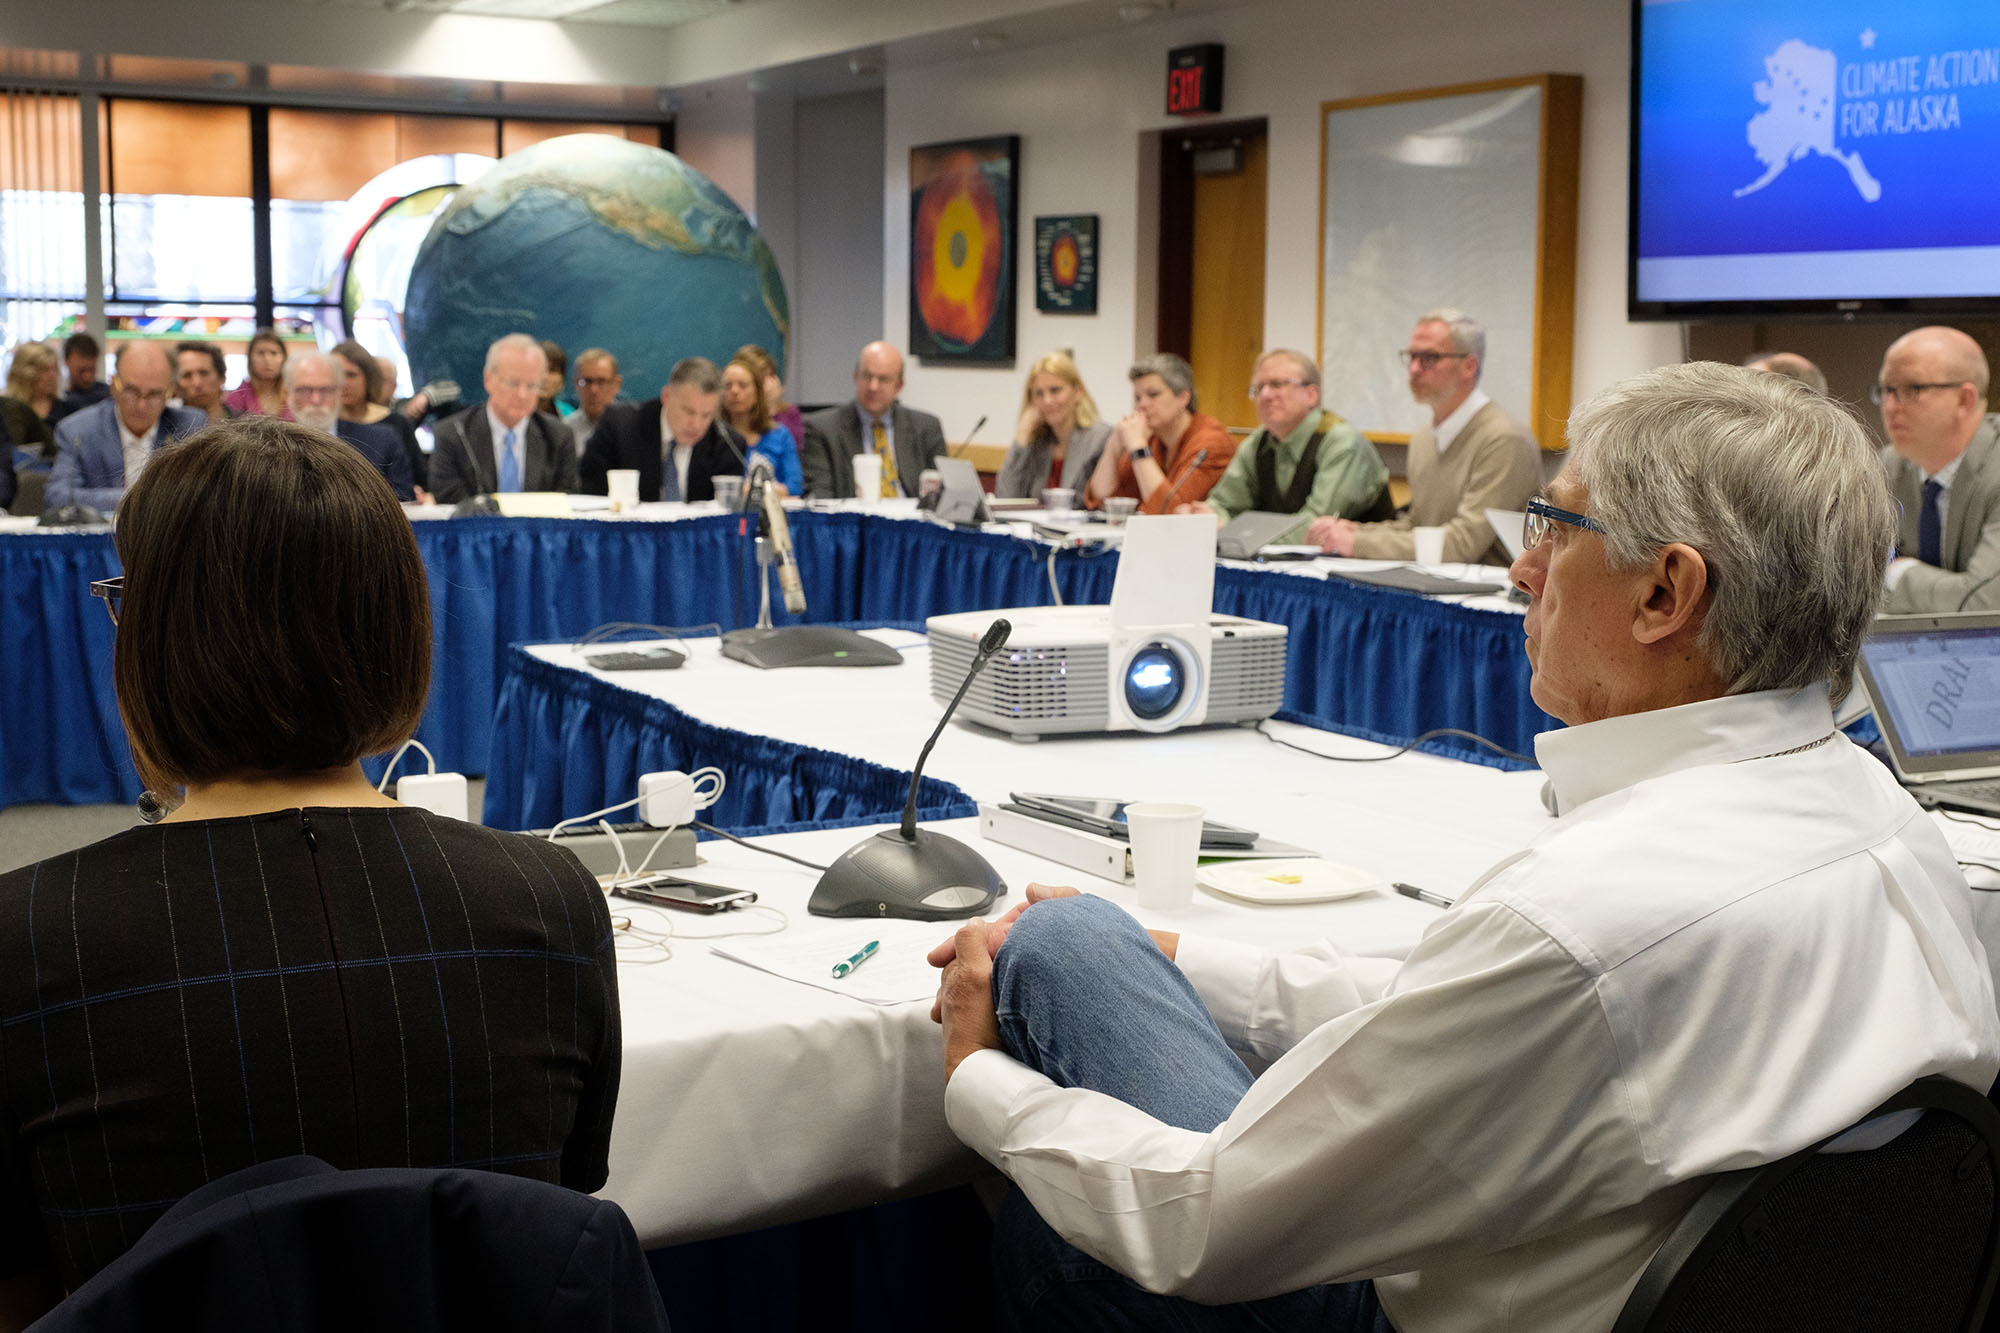 Meeting of Governor Walker's Climate Action Leadership team, chaired by Lieutenant Governor Byron Mallott, on the University of Alaska Fairbanks Campus, in Fairbanks, Alaska, April 12, 2018. (Photo by David Lienemann/Office of Governor Bill Walker)